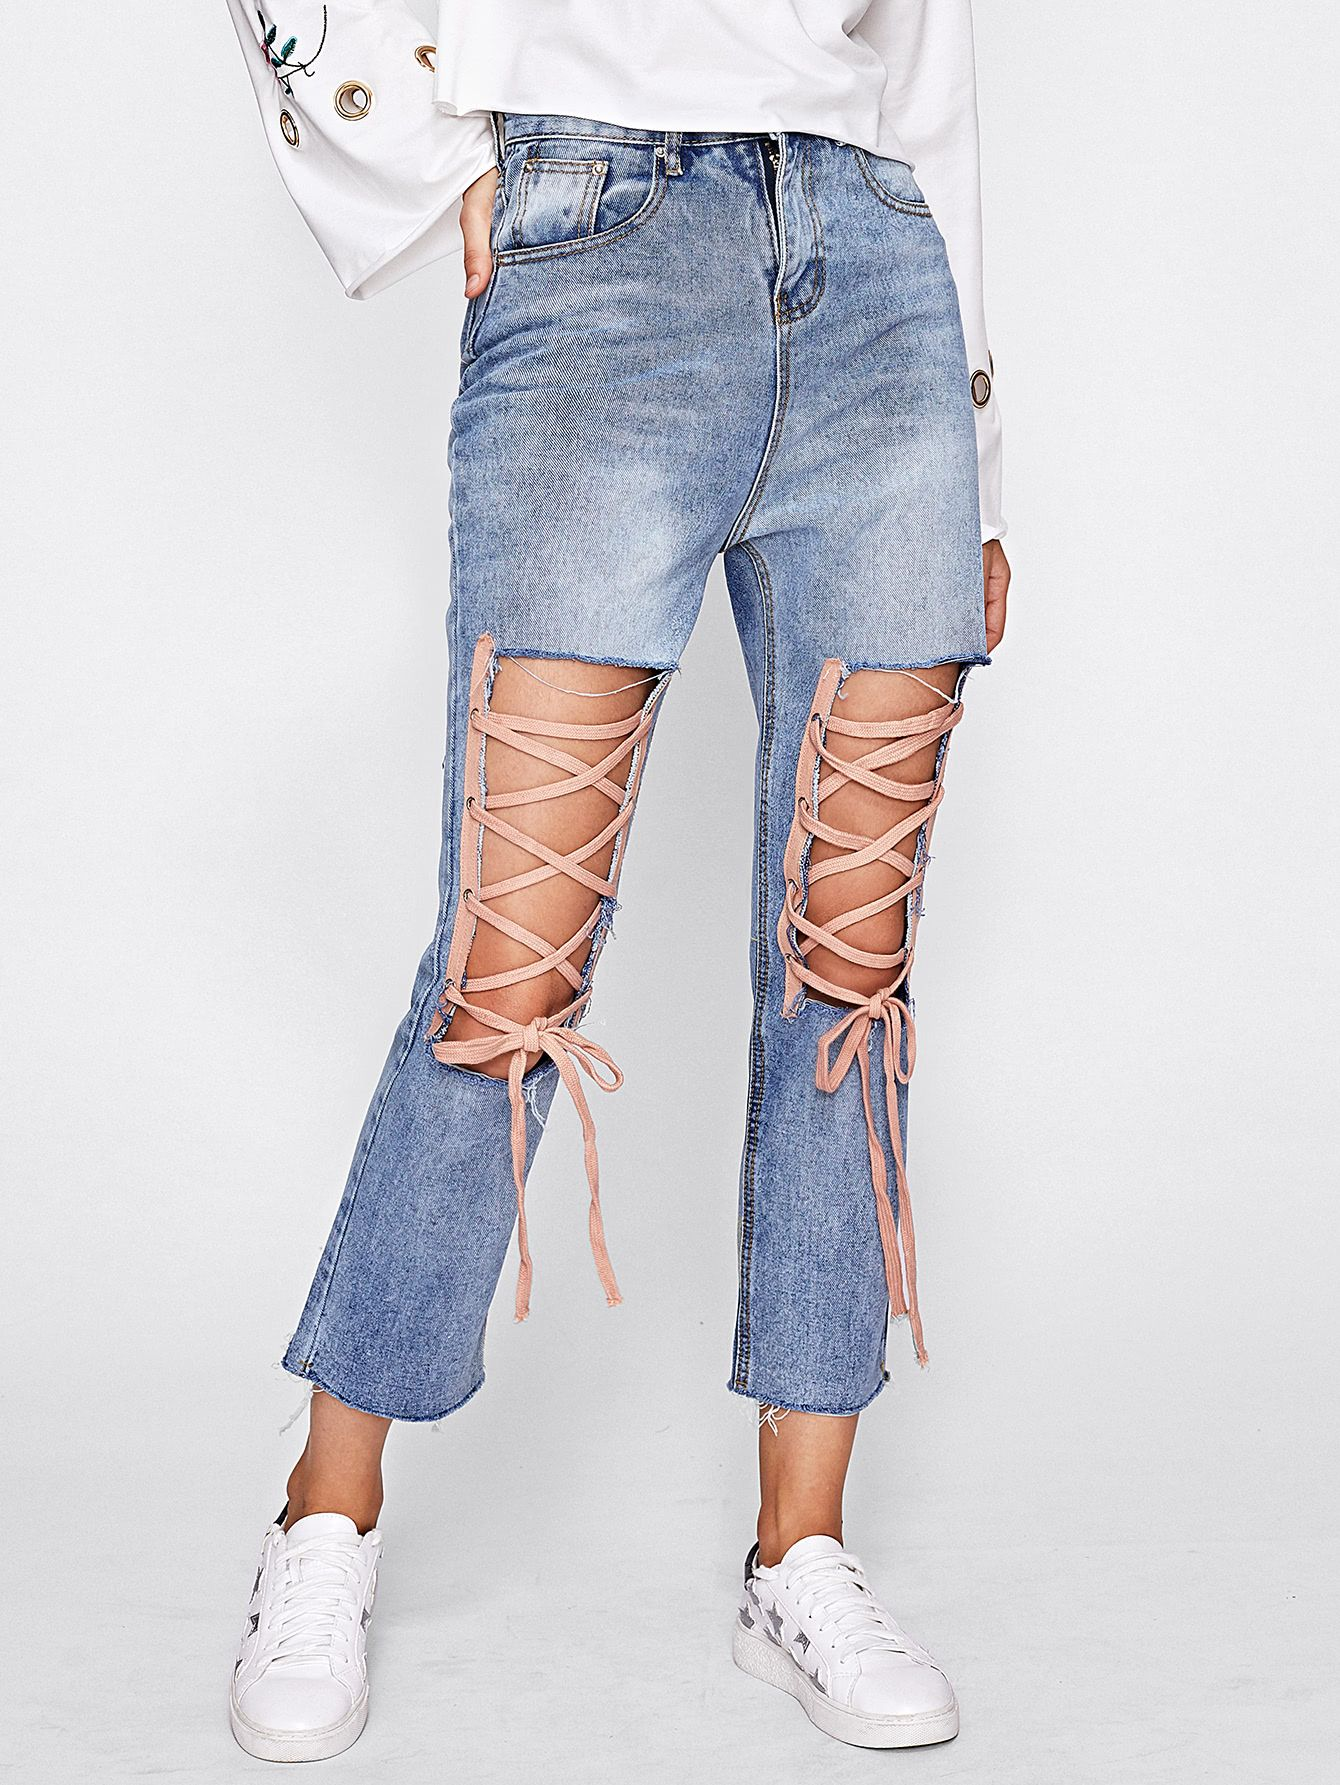 328eae5b42 Cut Out Front Lace Up Jeans -SheIn(Sheinside) | :: >> Just Landed ...